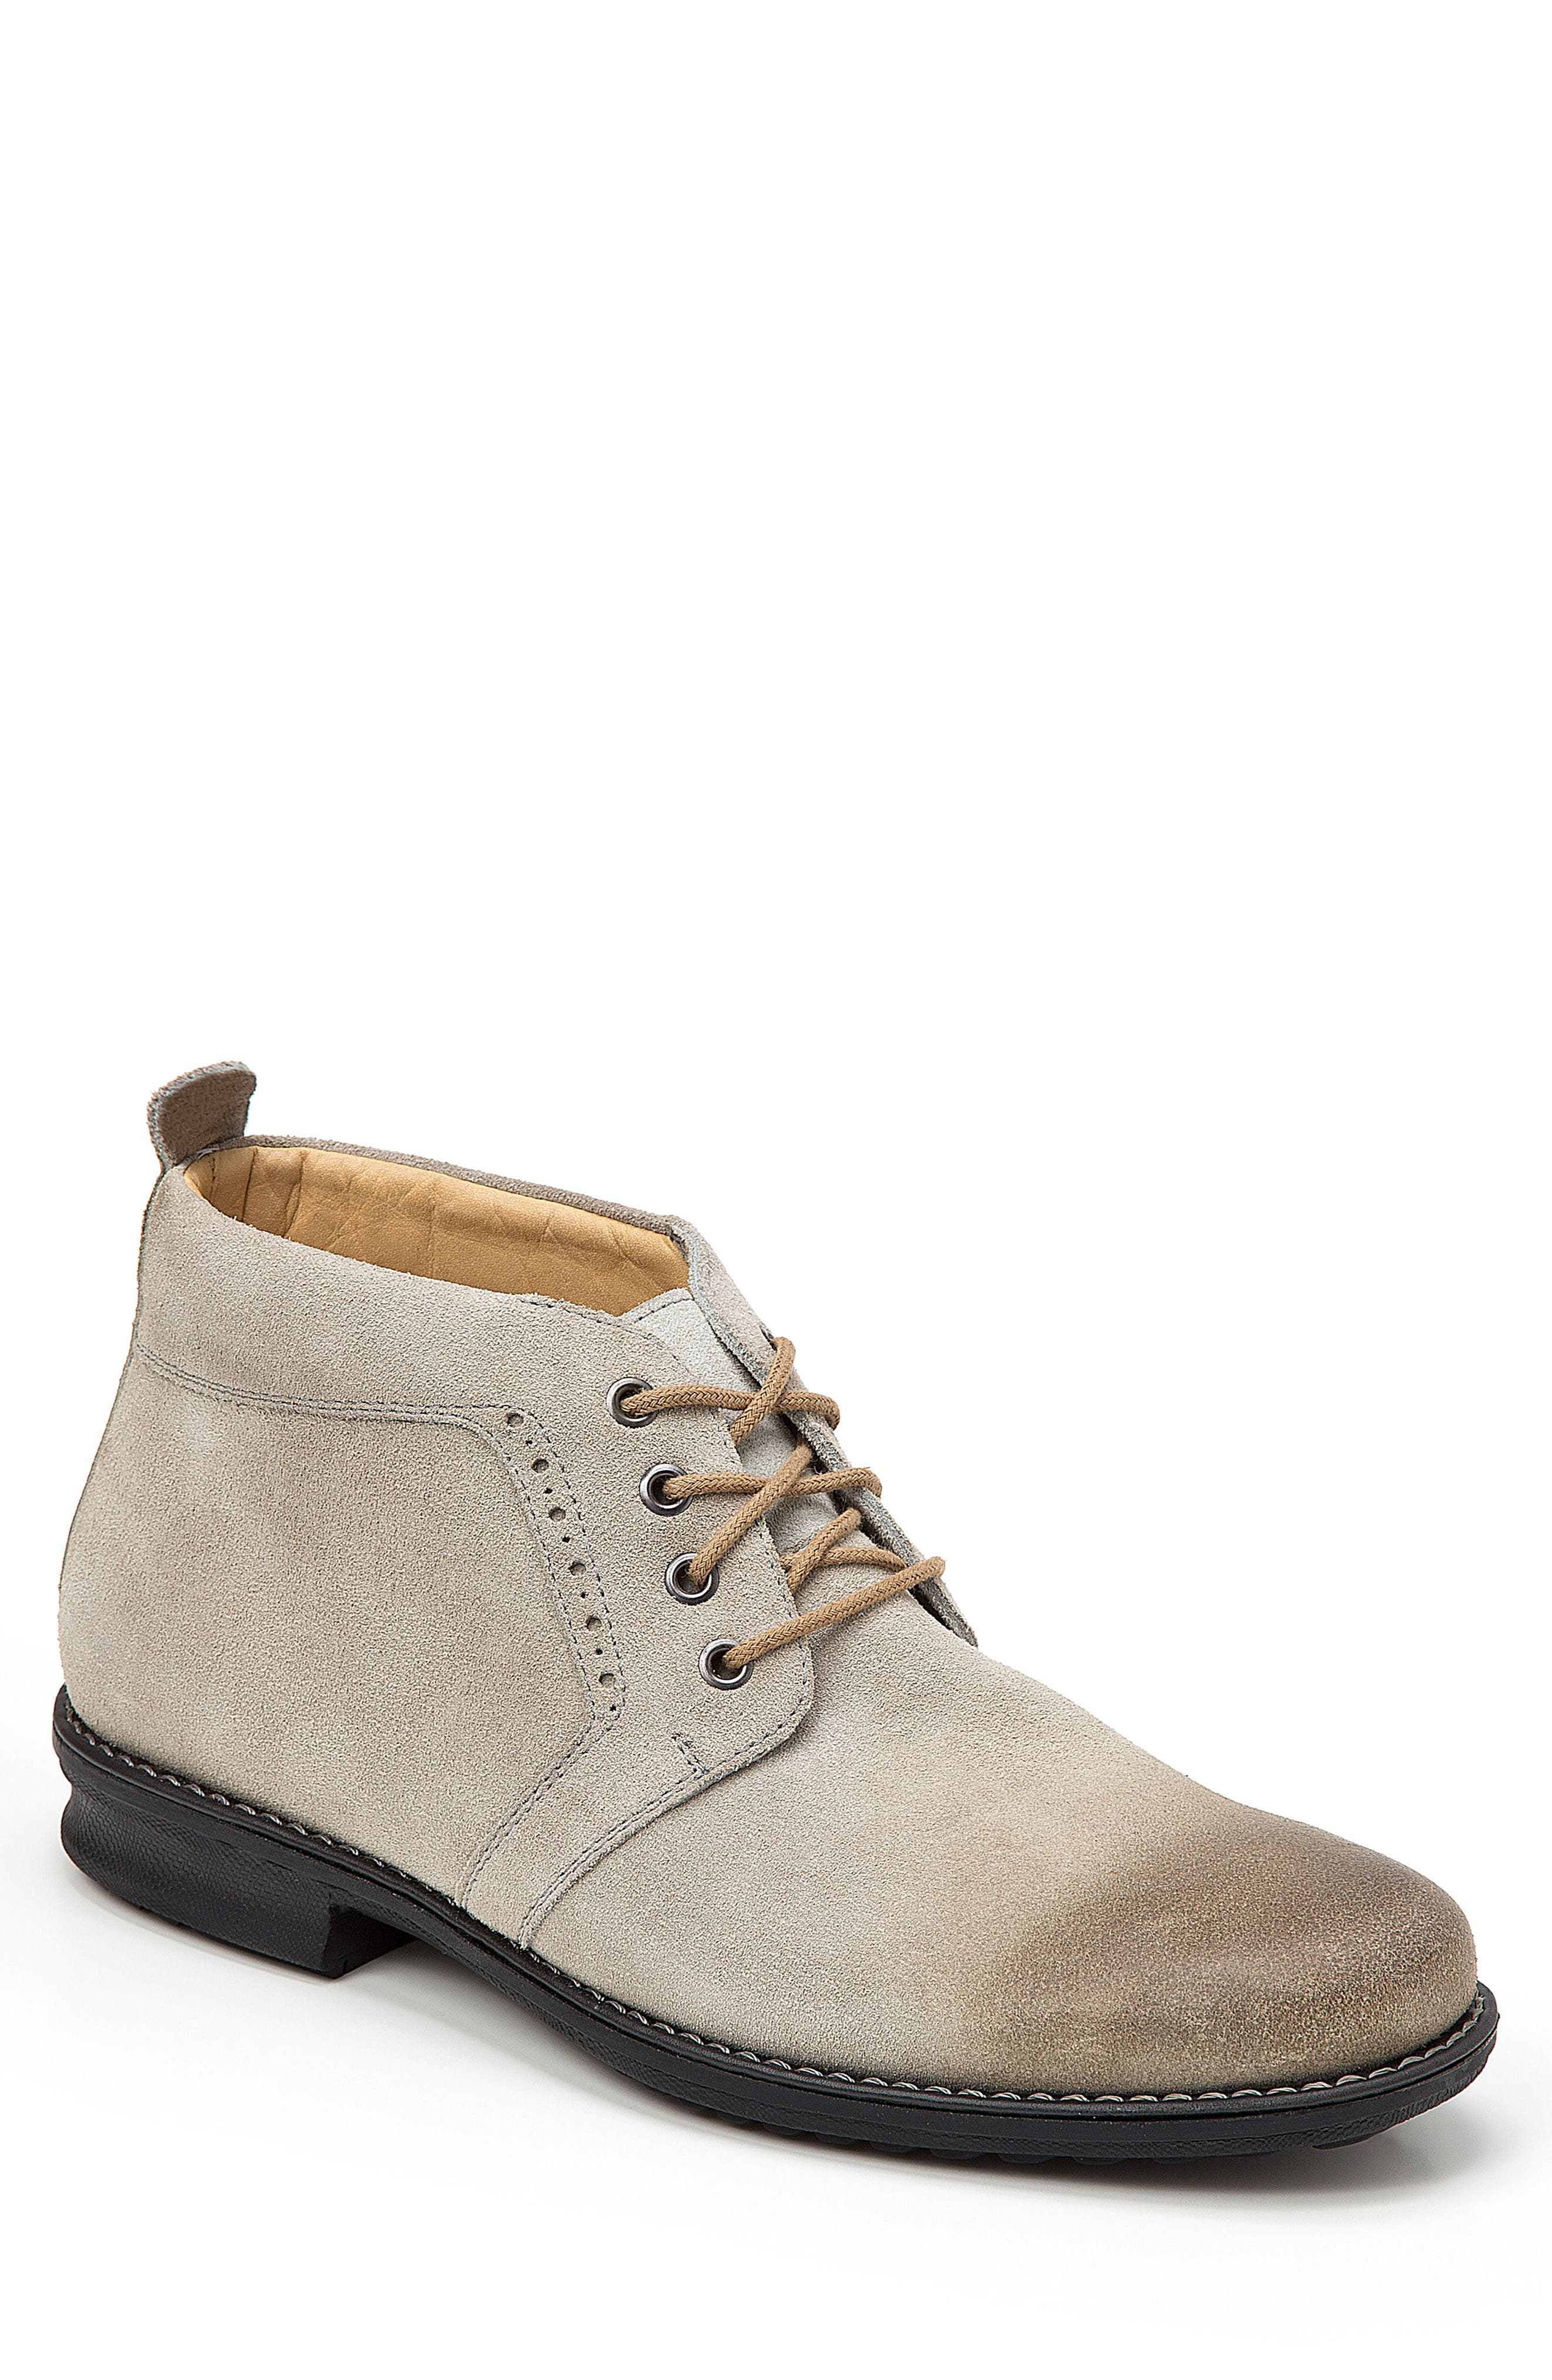 Chukka Boot,                         Main,                         color, GREY